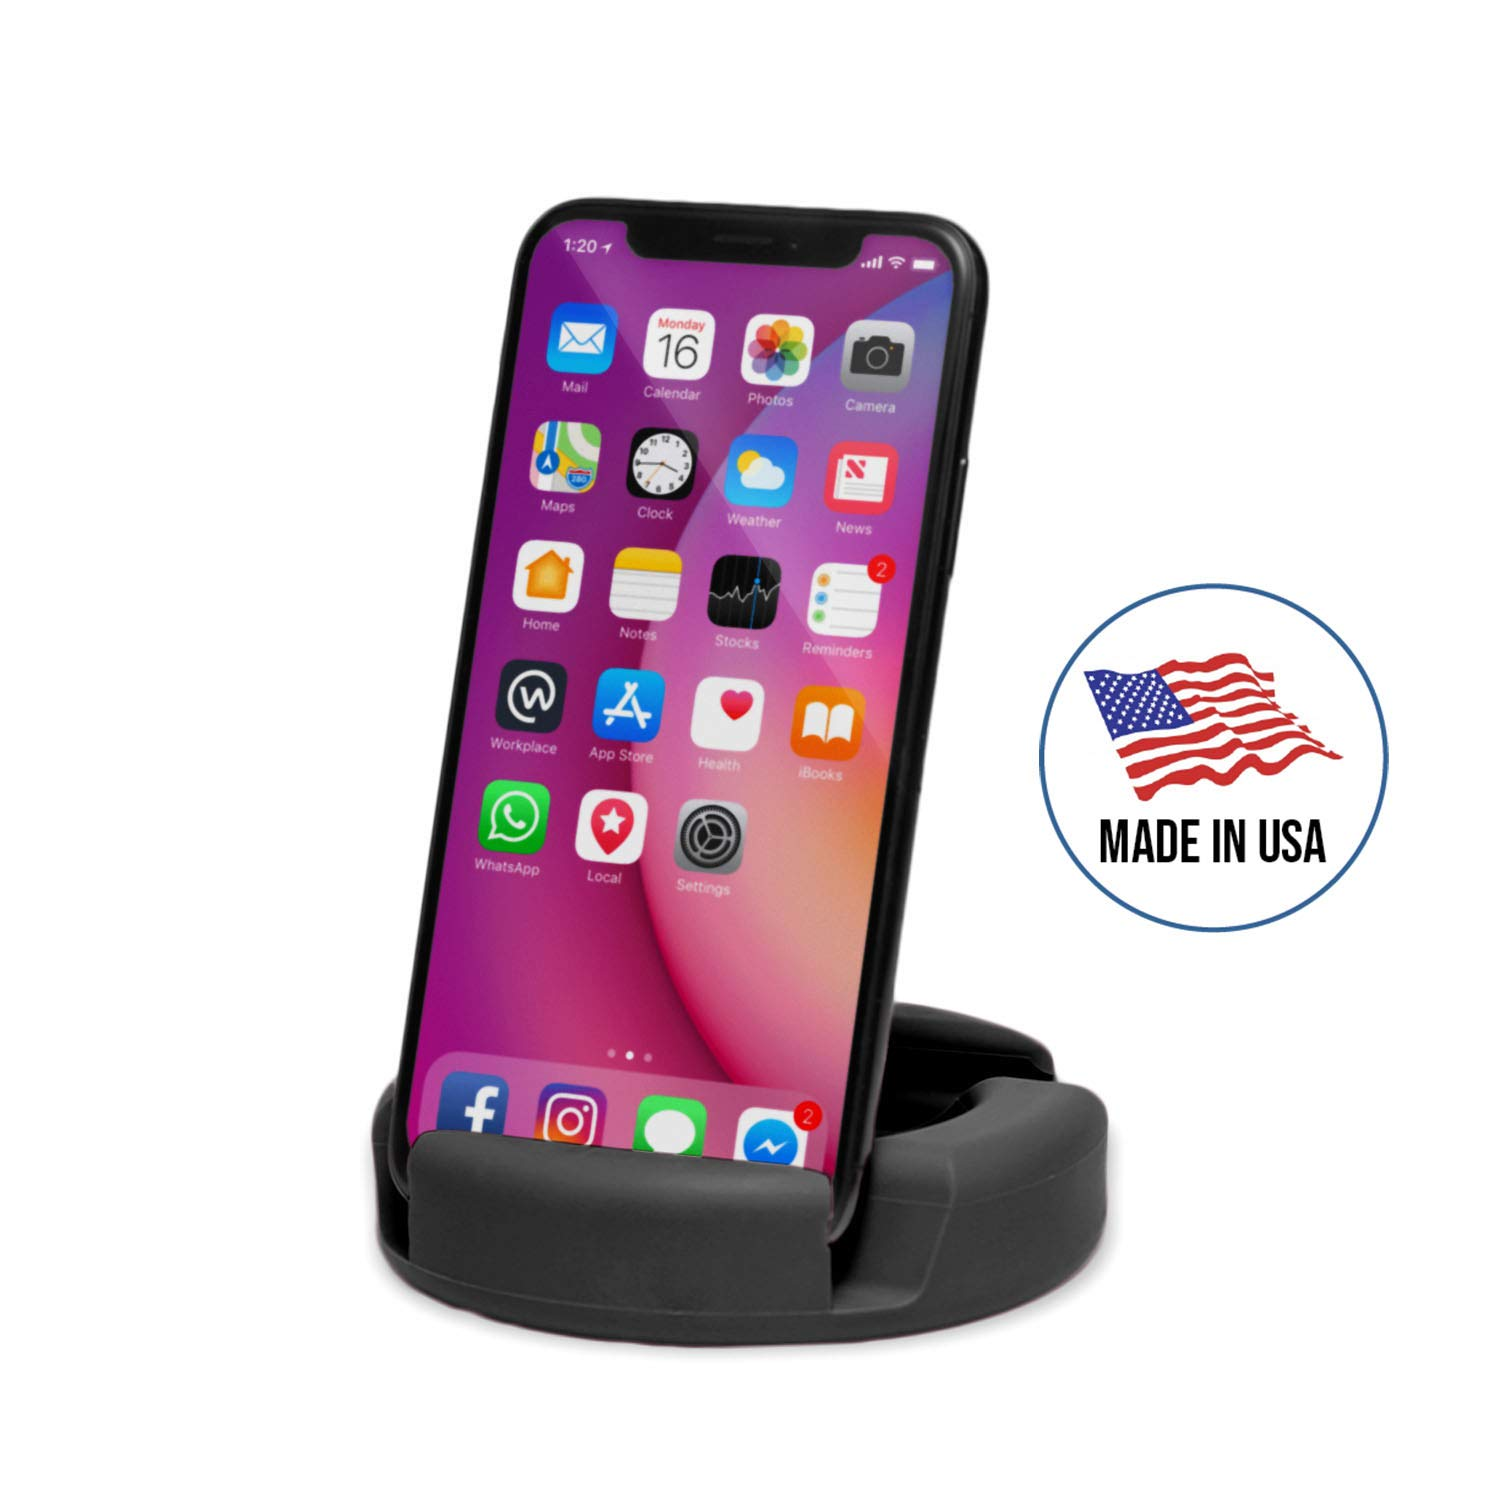 GoDonut Original Universal Smartphone and Tablet Stand, Compatible with Android iPad iPhone Samsung Galaxy LG Pixel | Multi-Angled to View on Tablet Kindle Fire Smartphone XS Max XR 8+ 8 7+ 7 6 5 by GoDonut